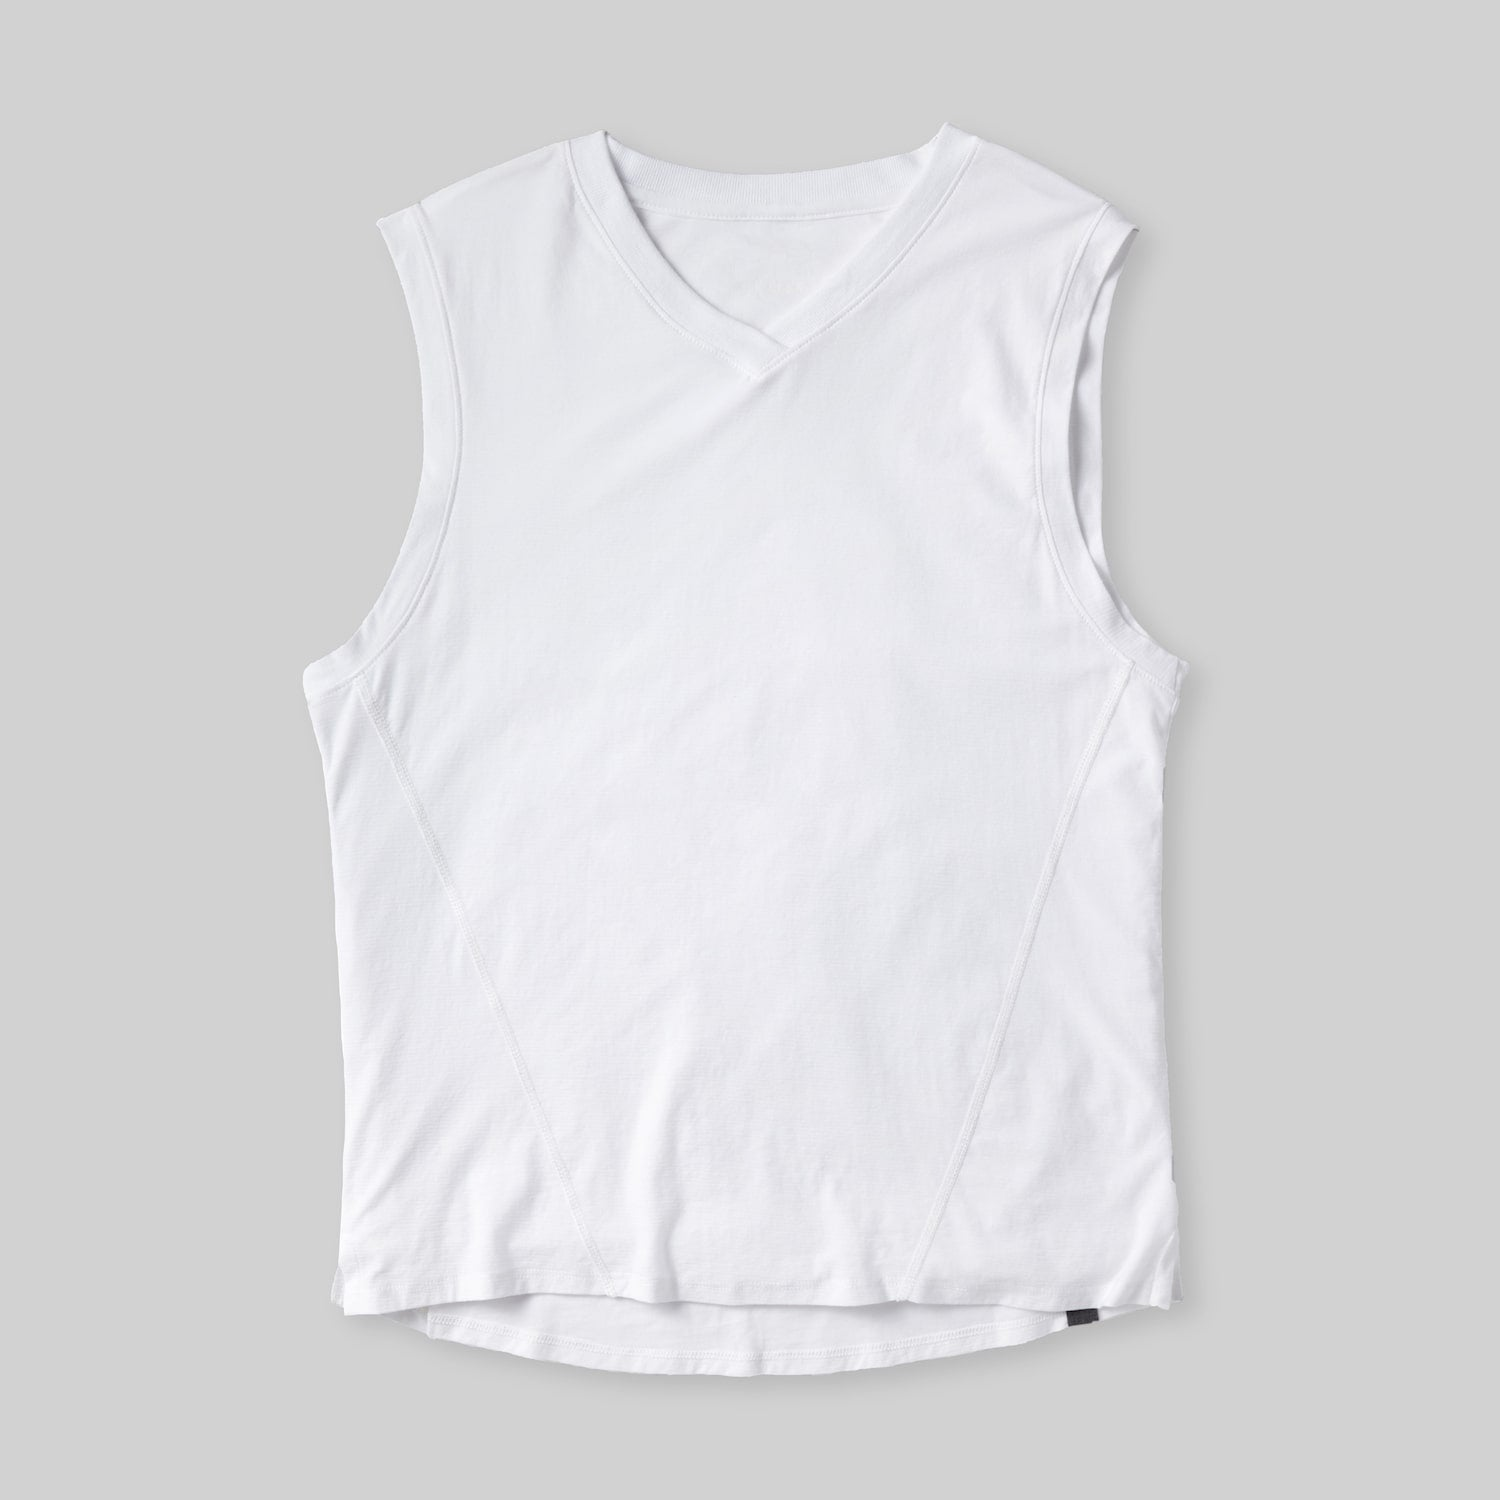 Lahgo Sleepwear Cool Muscle Tee - #White